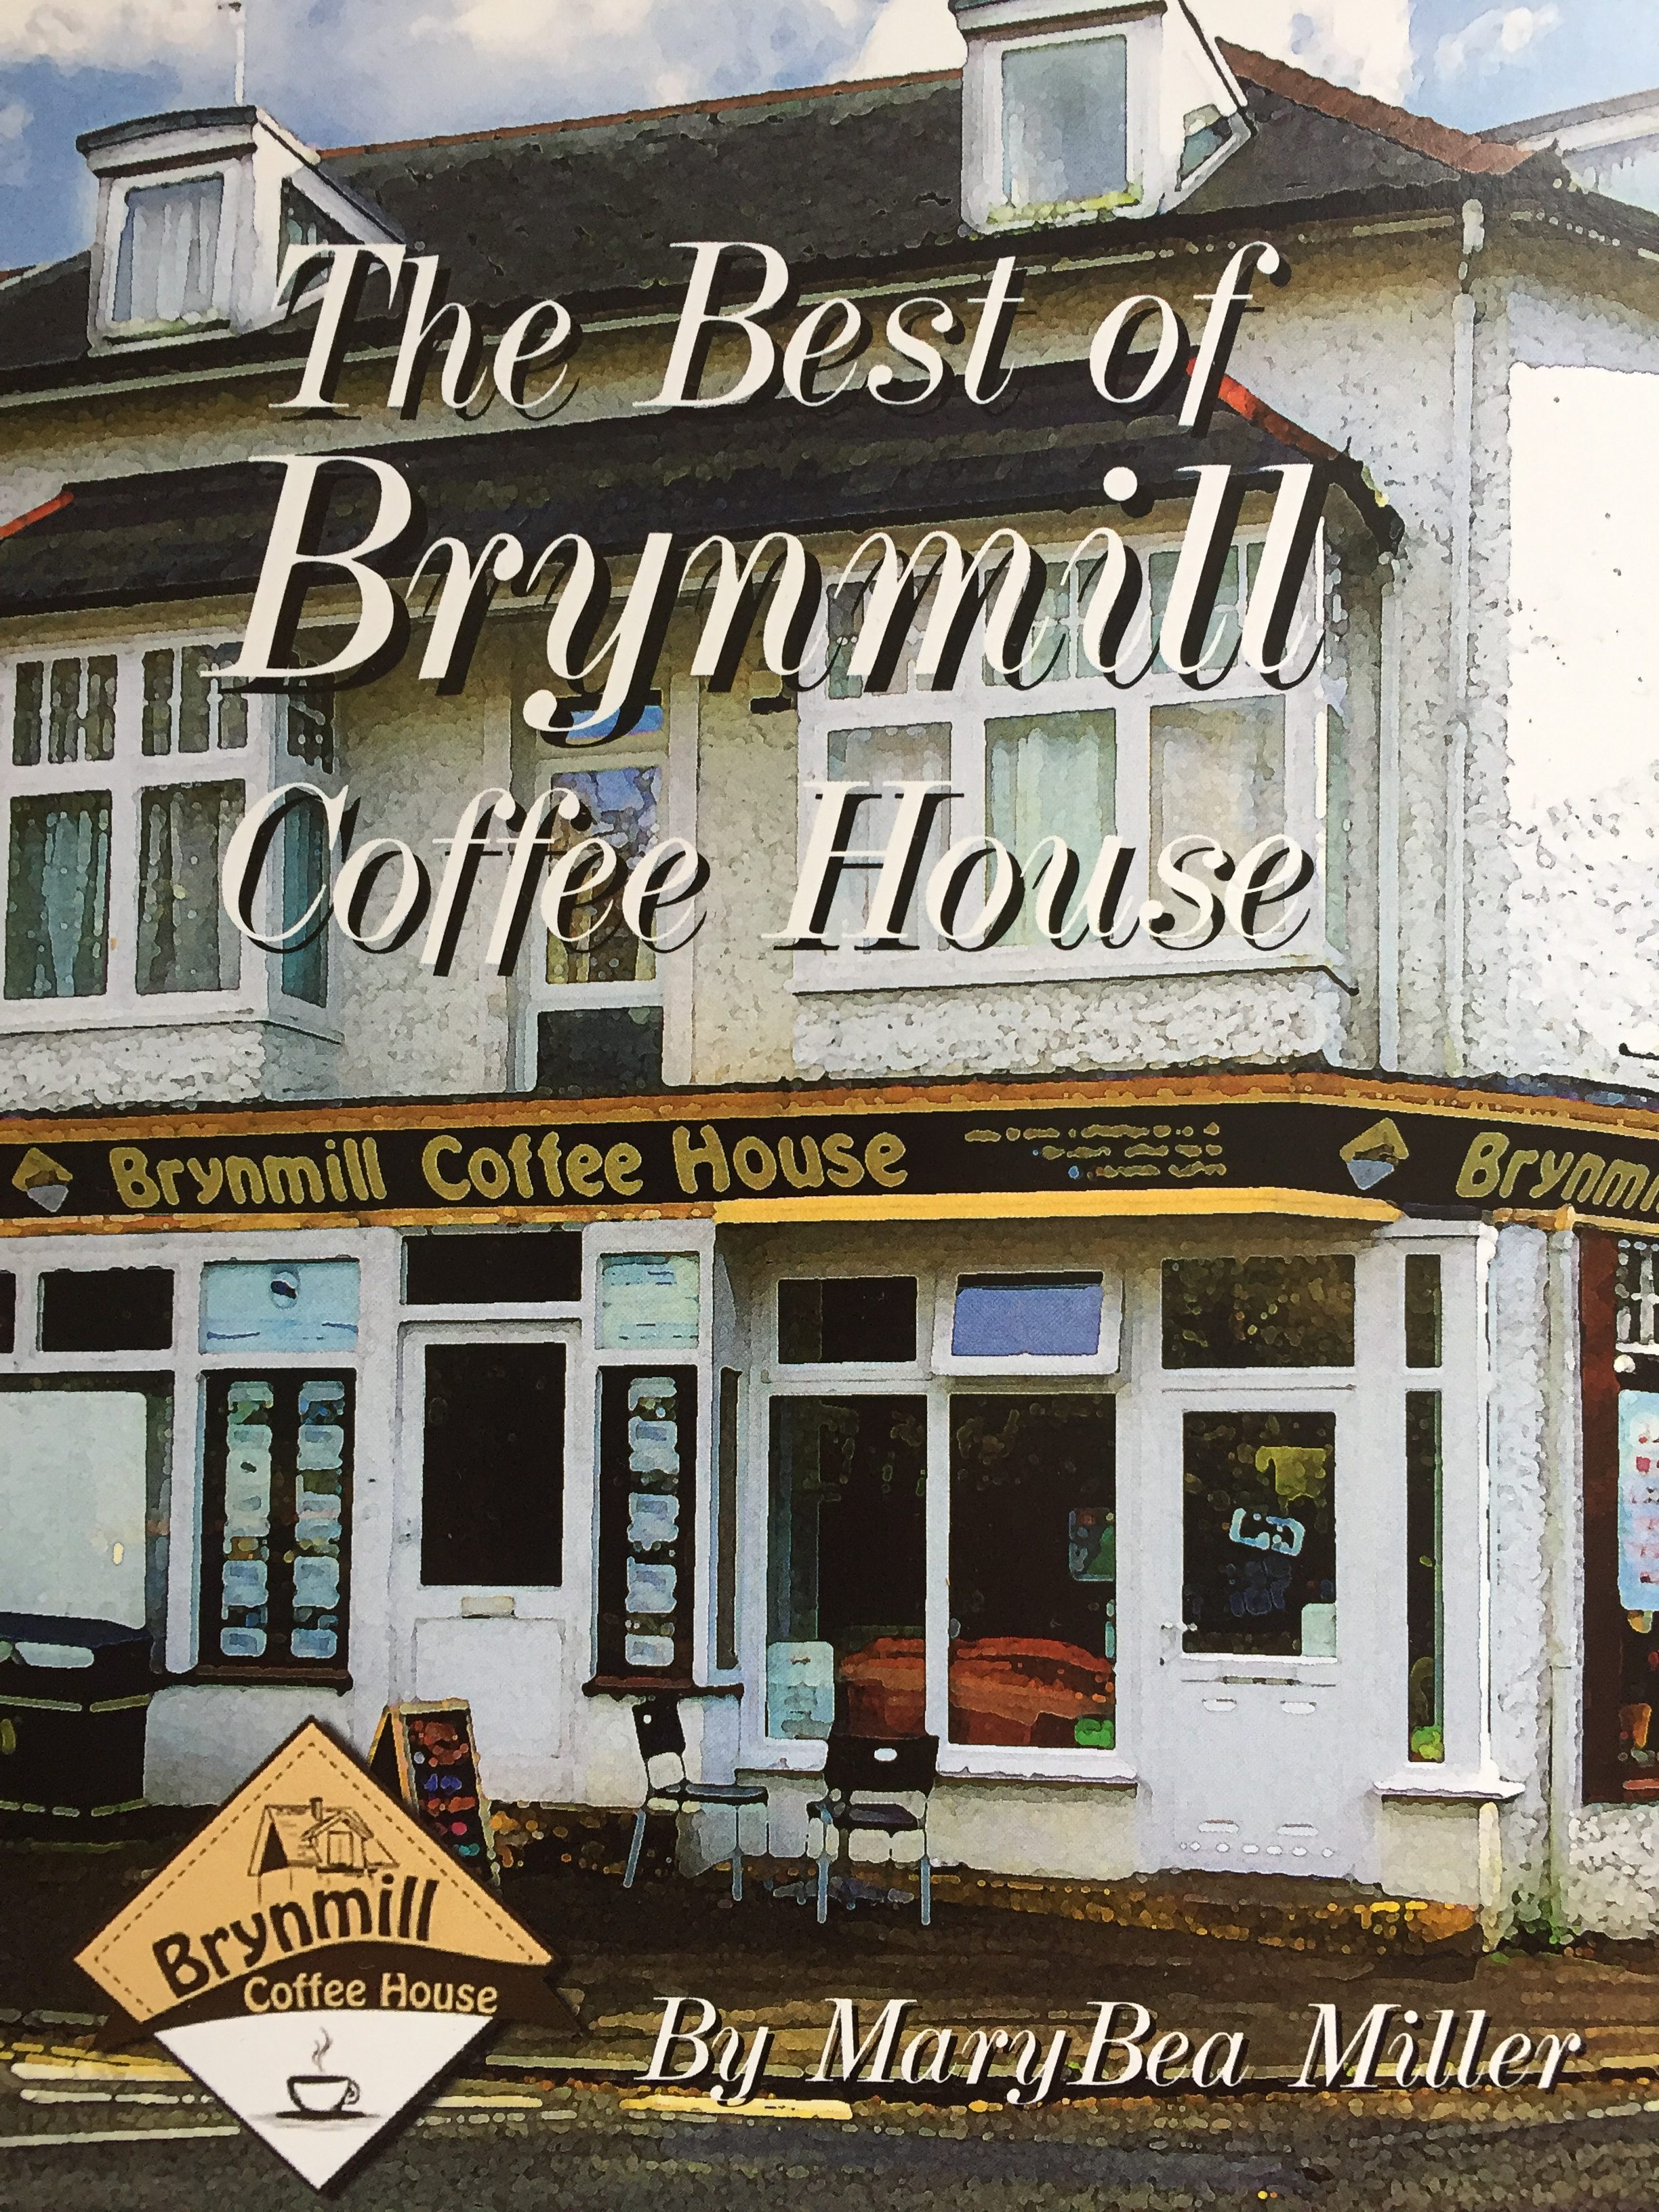 The Brynmill Coffee House Cook Book